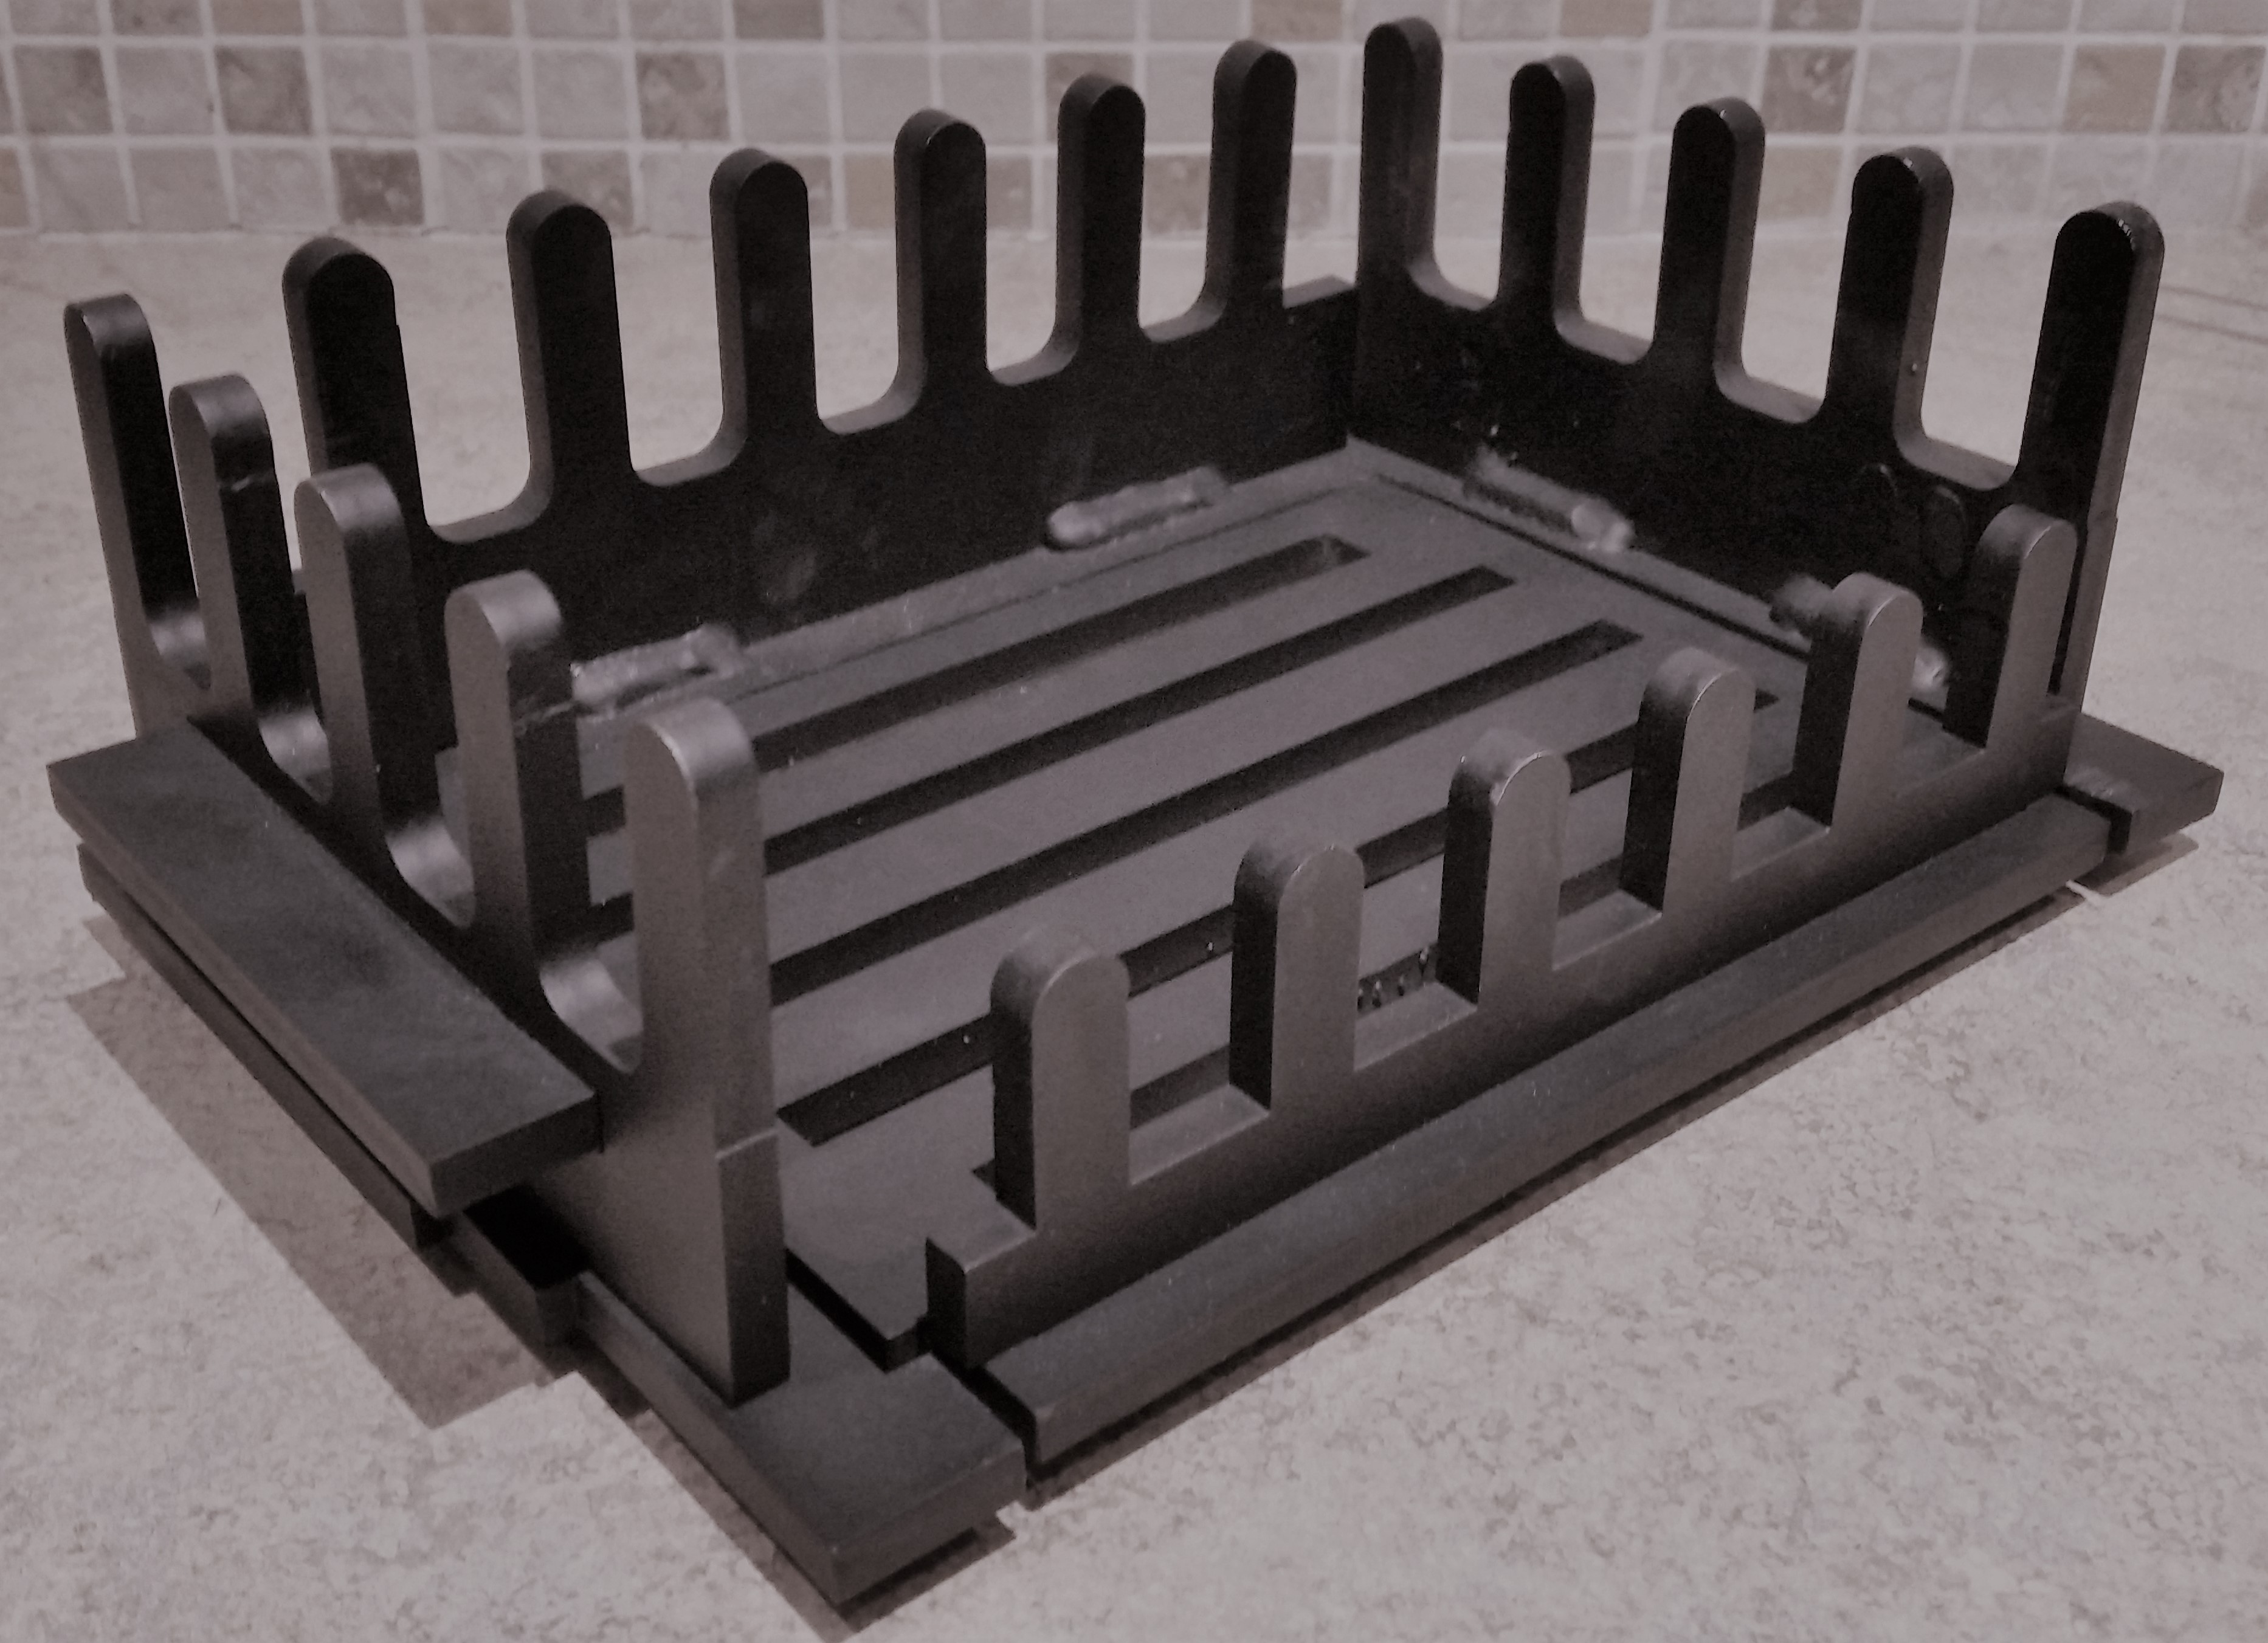 Multi Fuel Grate (4kW, 5kW, 8kW only) - Burley